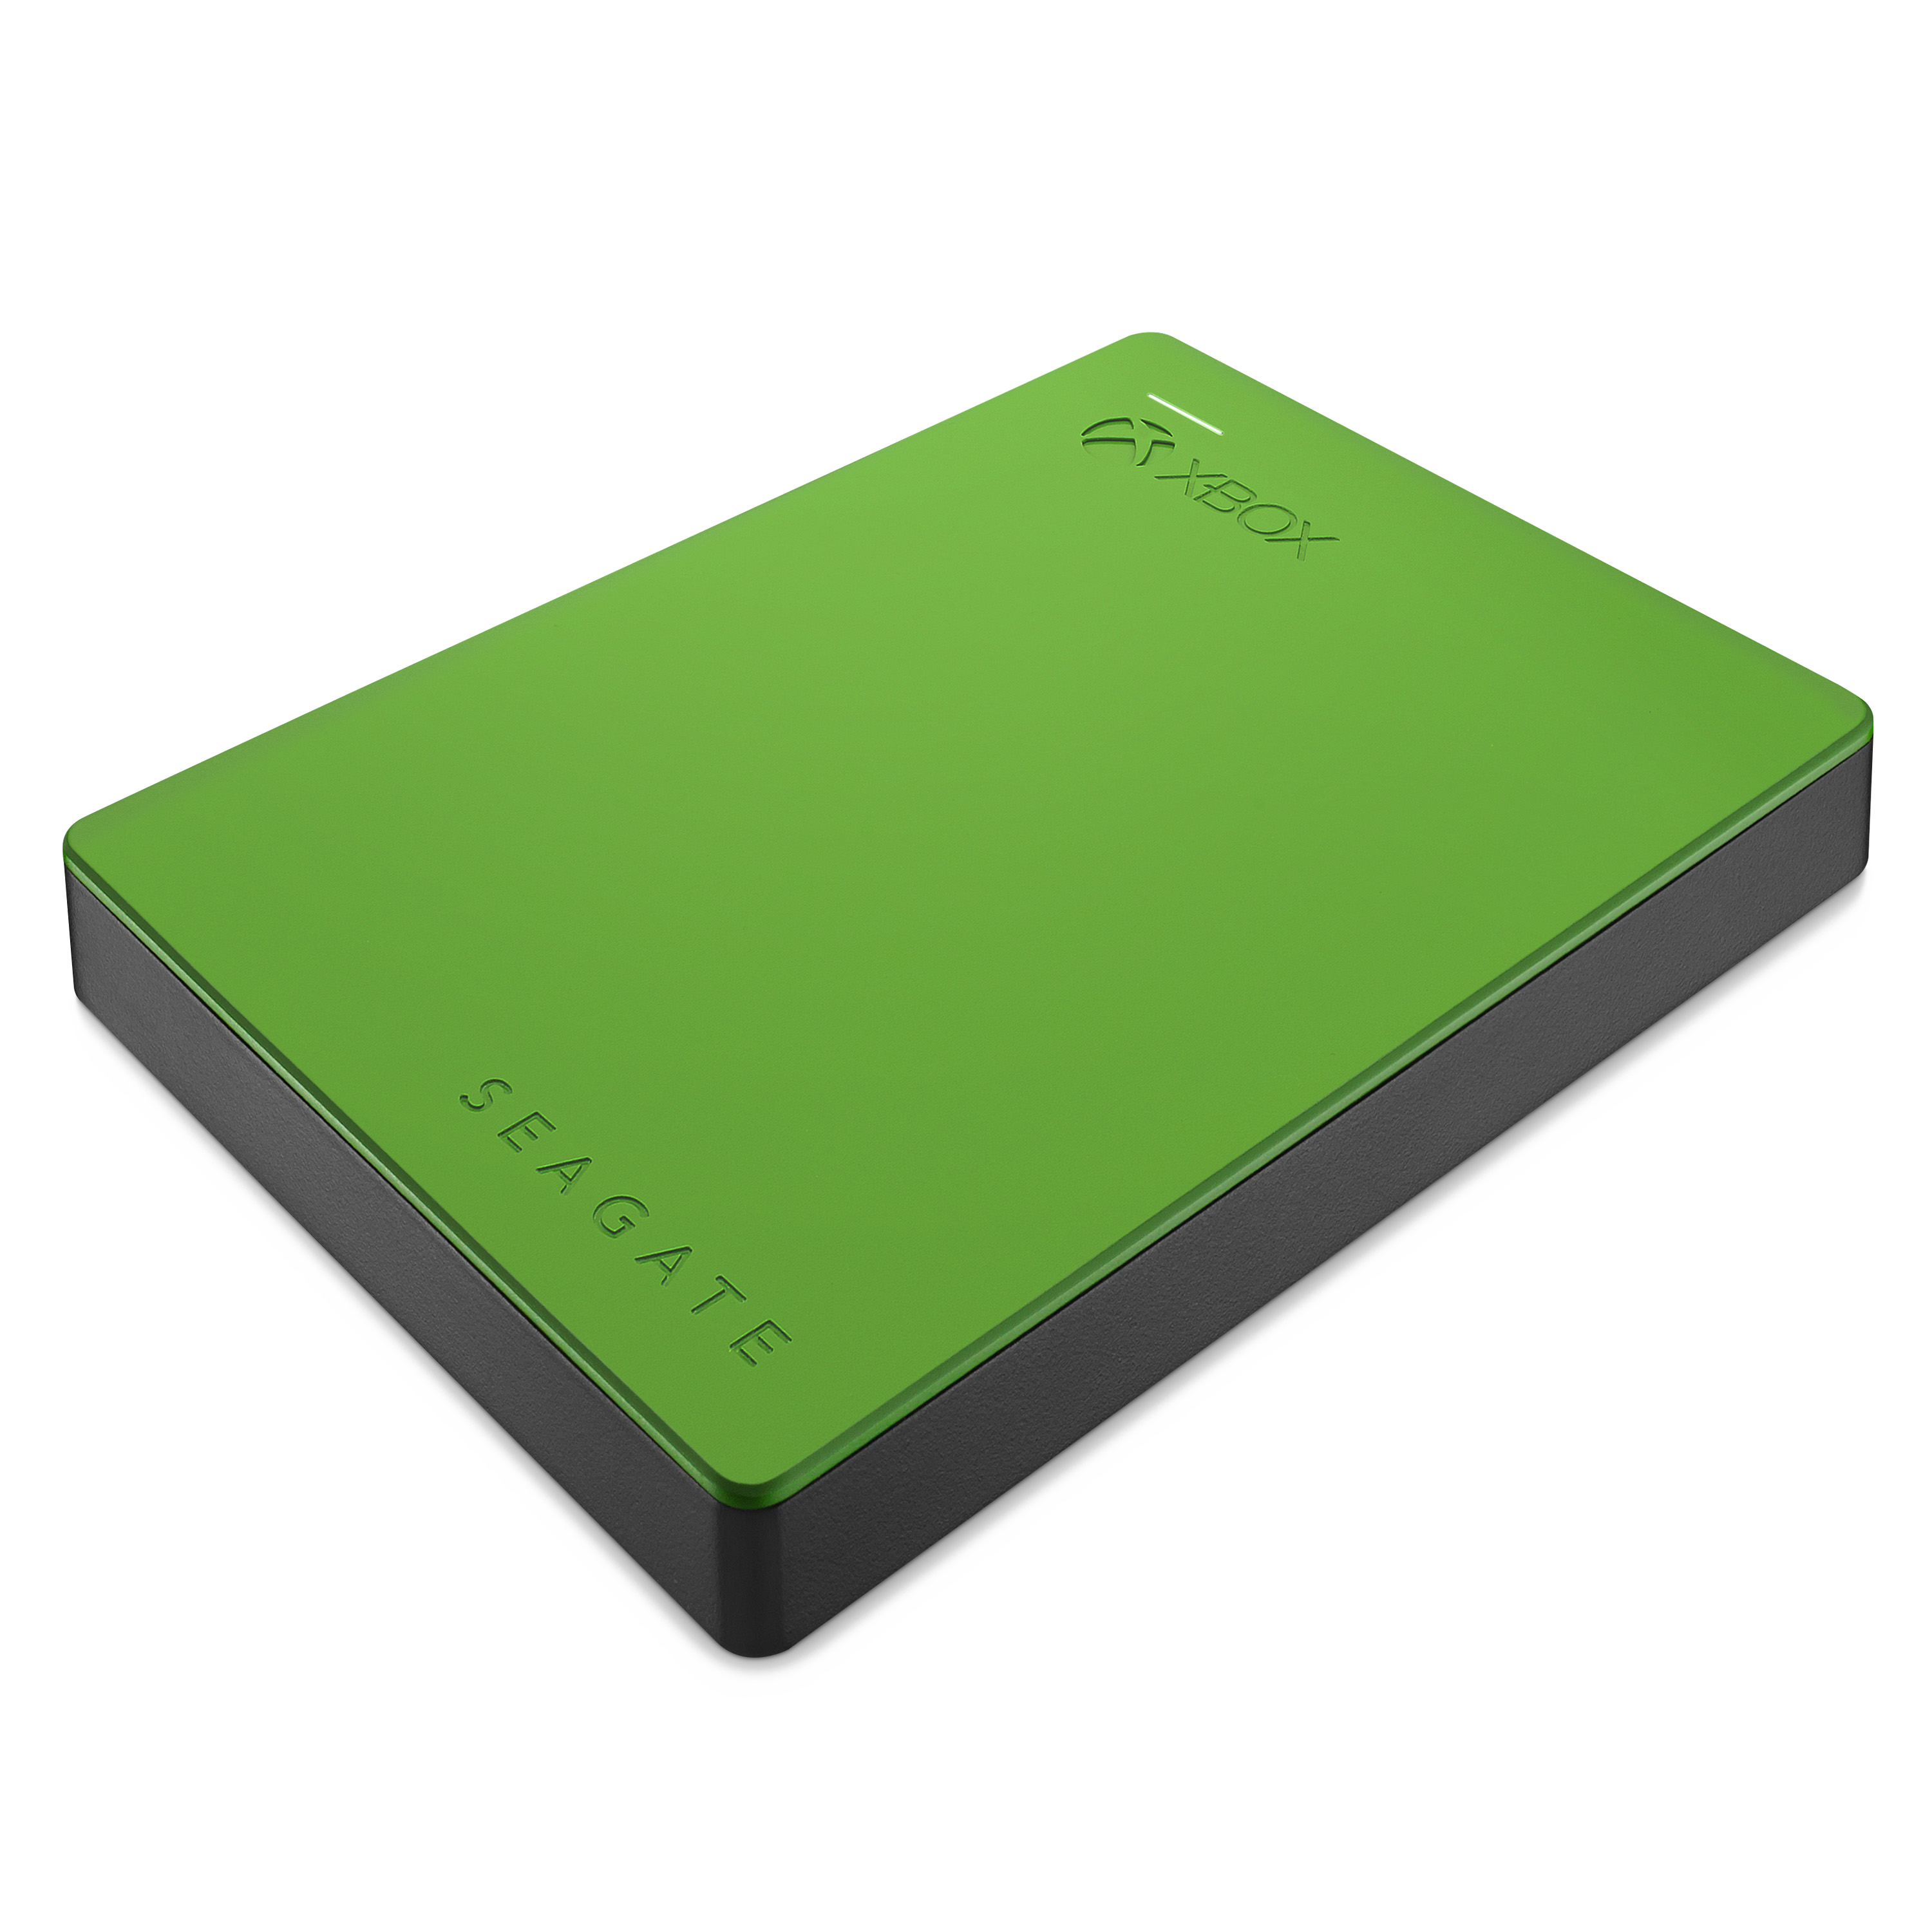 New Seagate Game Drive For Xbox